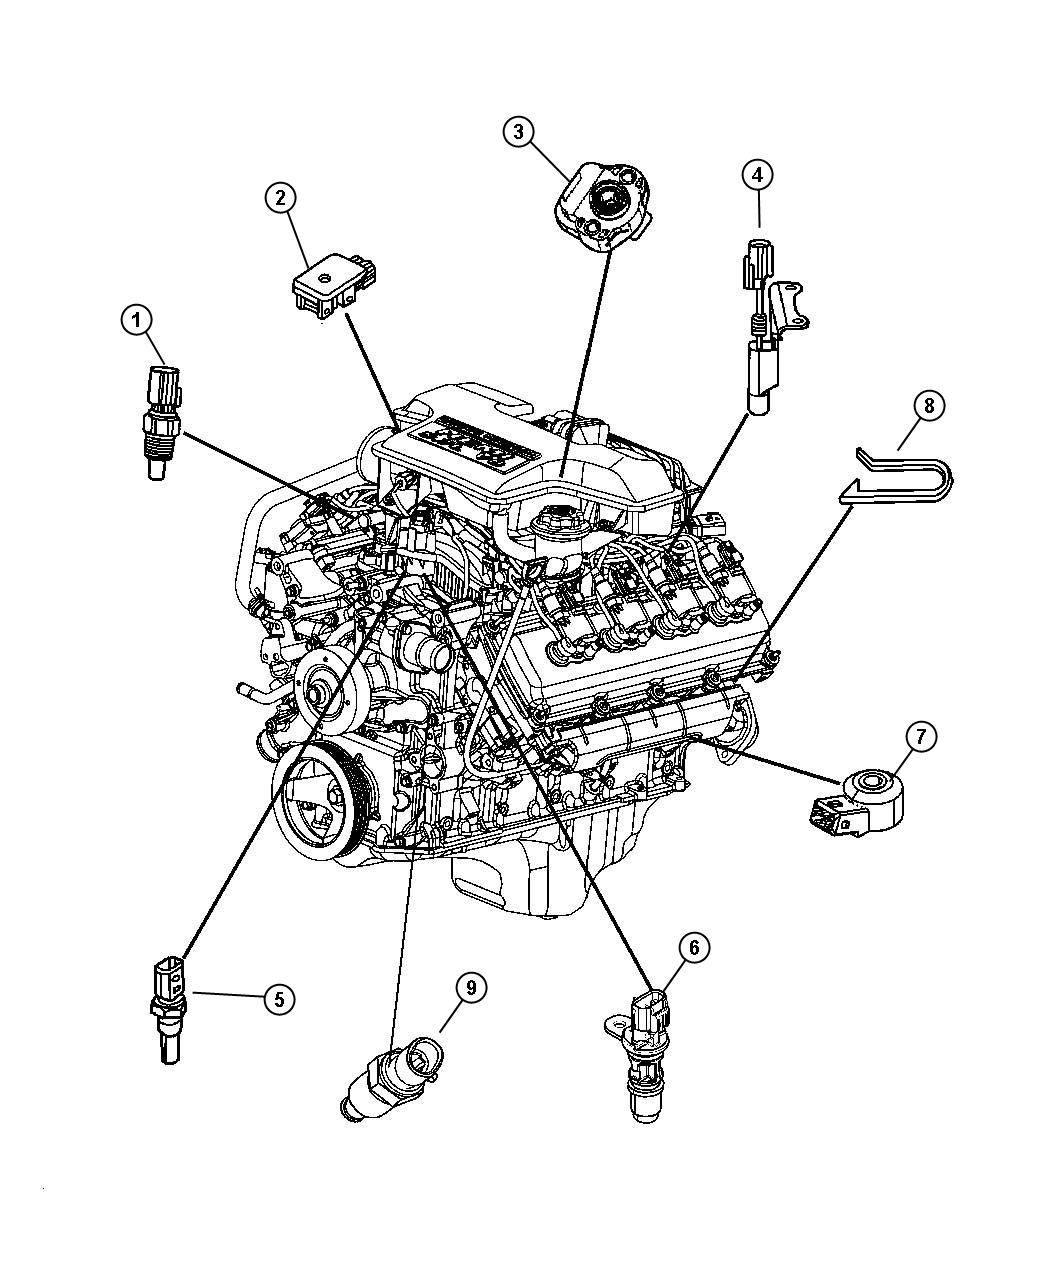 350 Chevy Engine Parts Diagram